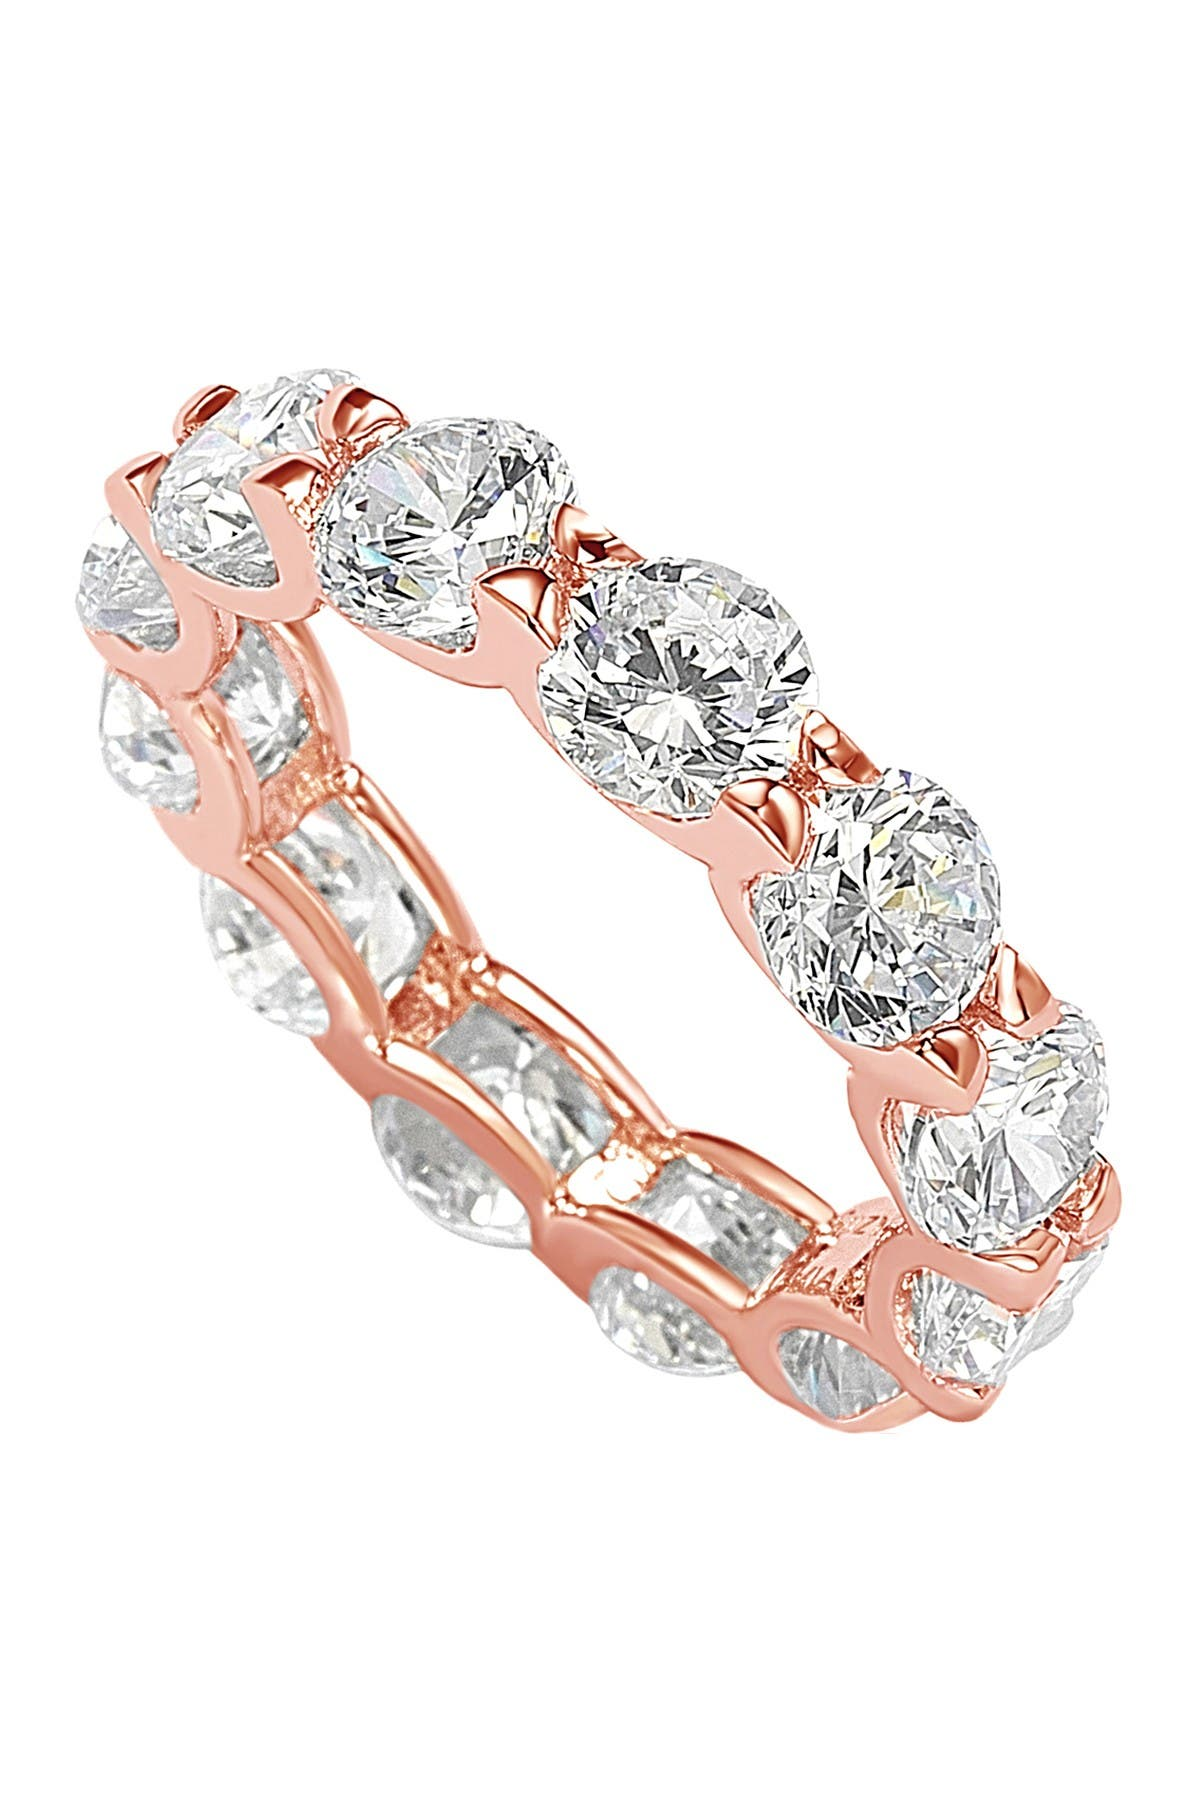 Image of Suzy Levian Rose-Tone Sterling Silver Round Cut CZ Eternity Band Ring